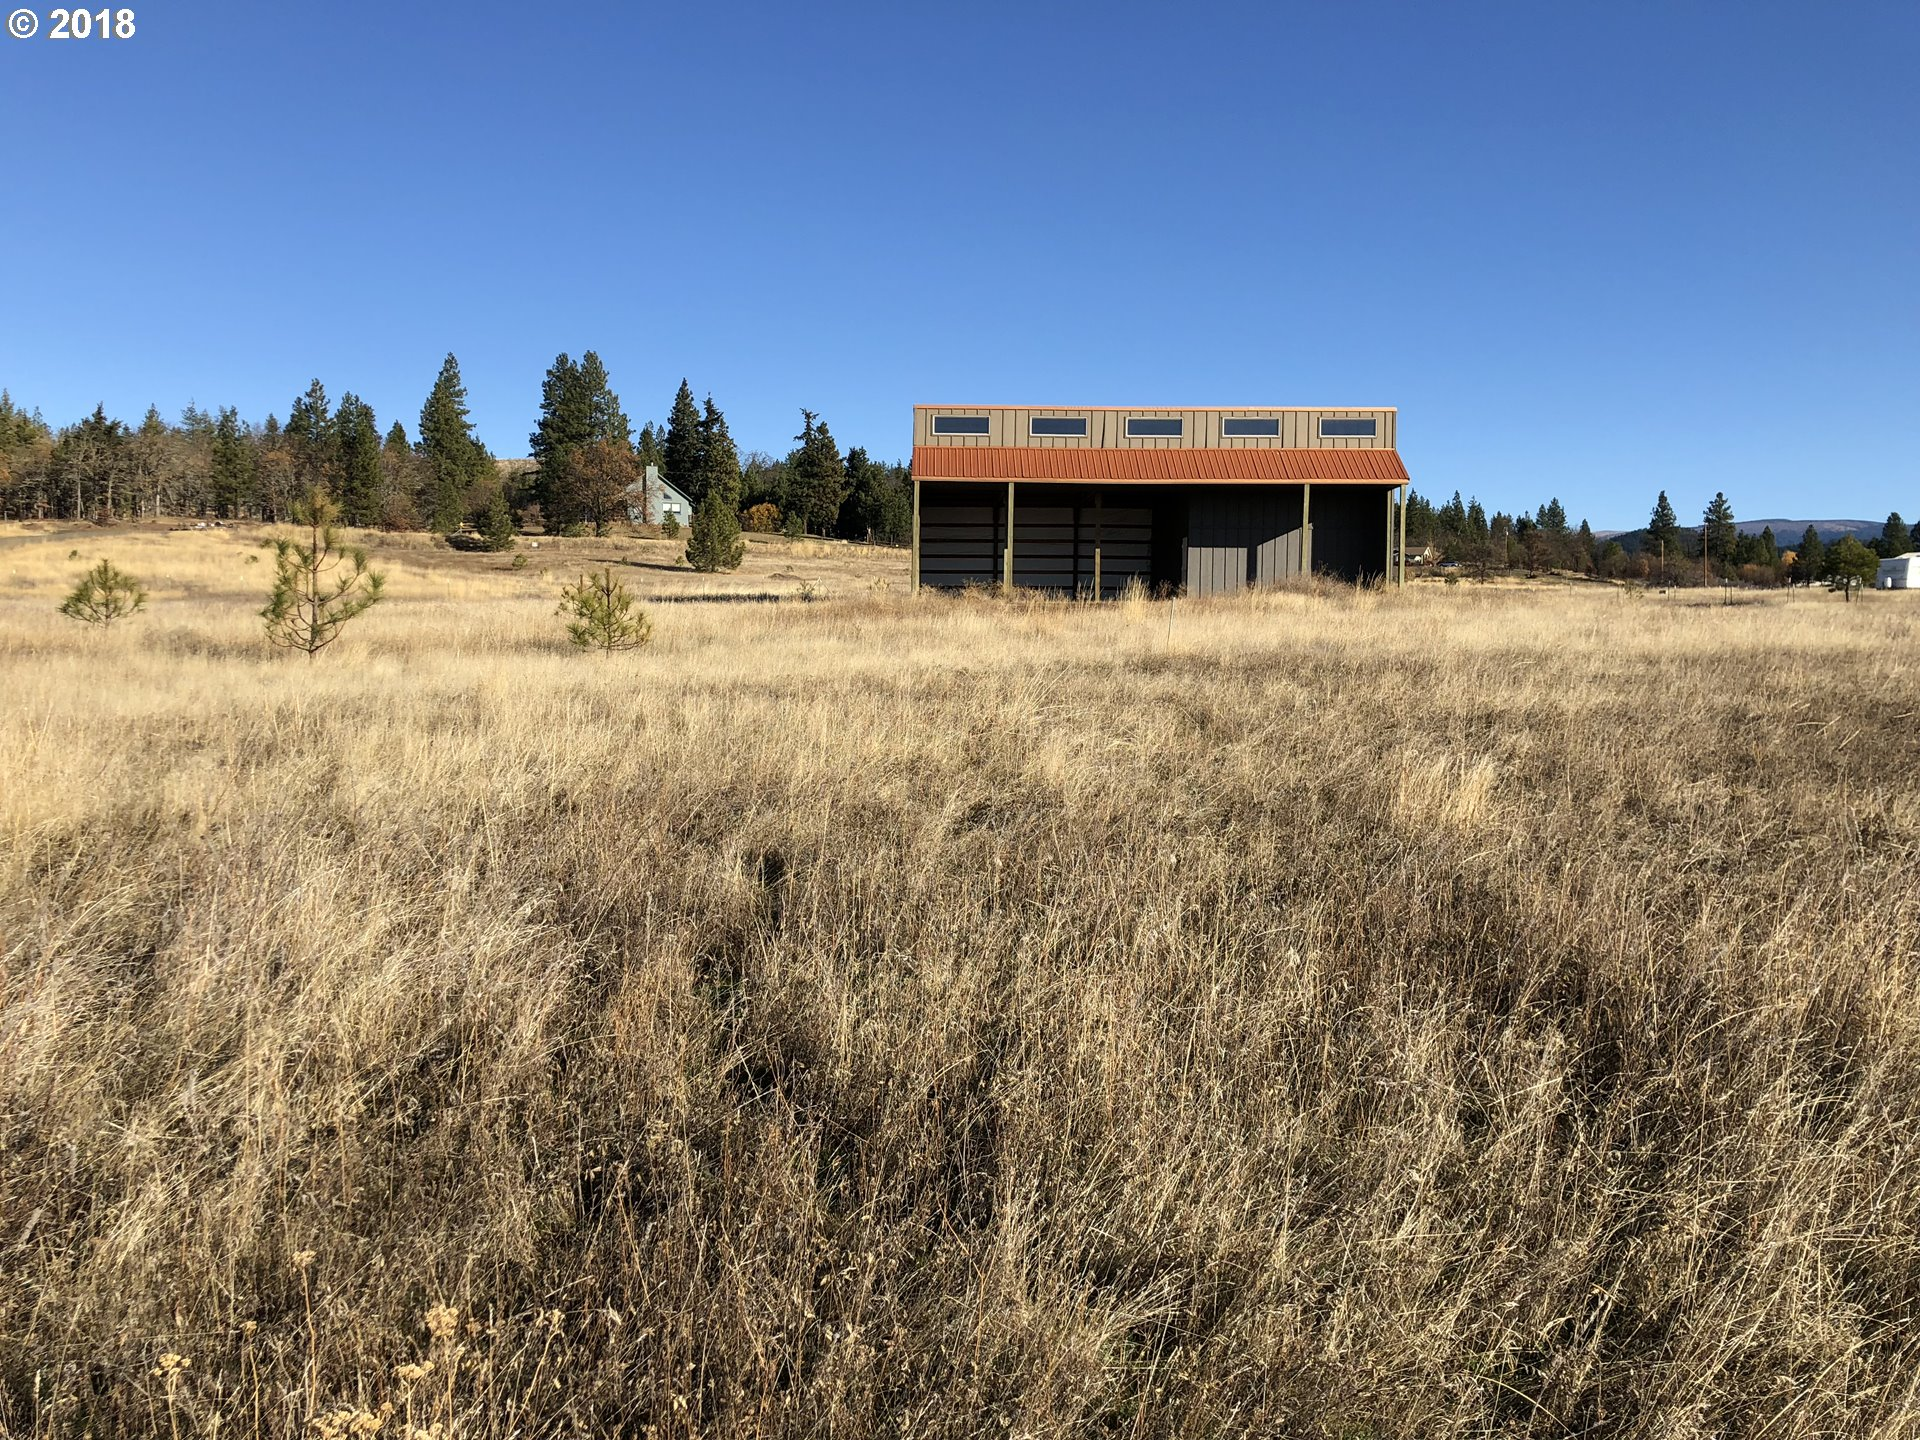 6 SEELY DR Goldendale, WA 98620 - MLS #: 18589711